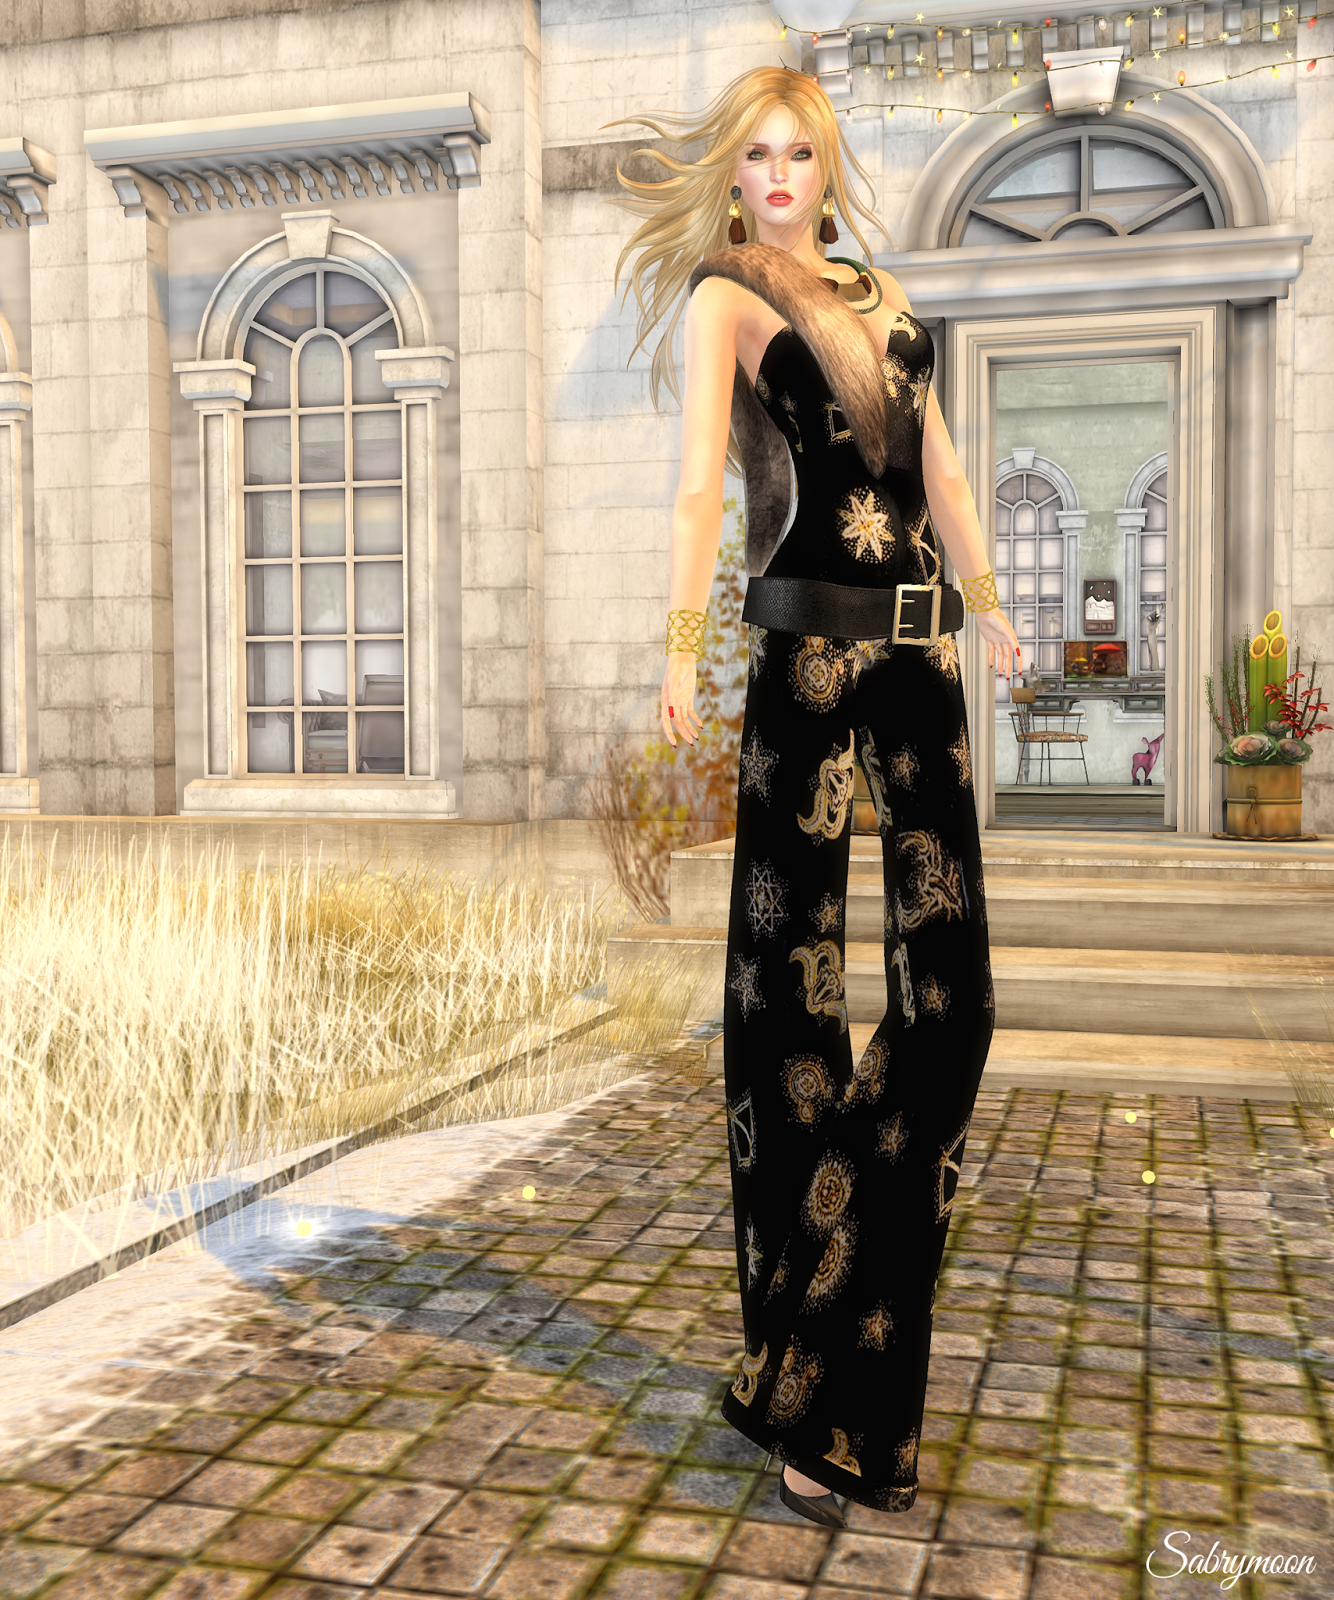 fc47eb772fb JUMO Fashion has recently partecipated in the fantastic Ferosh Fashion  Weekend event which took place from January 22th to 24th